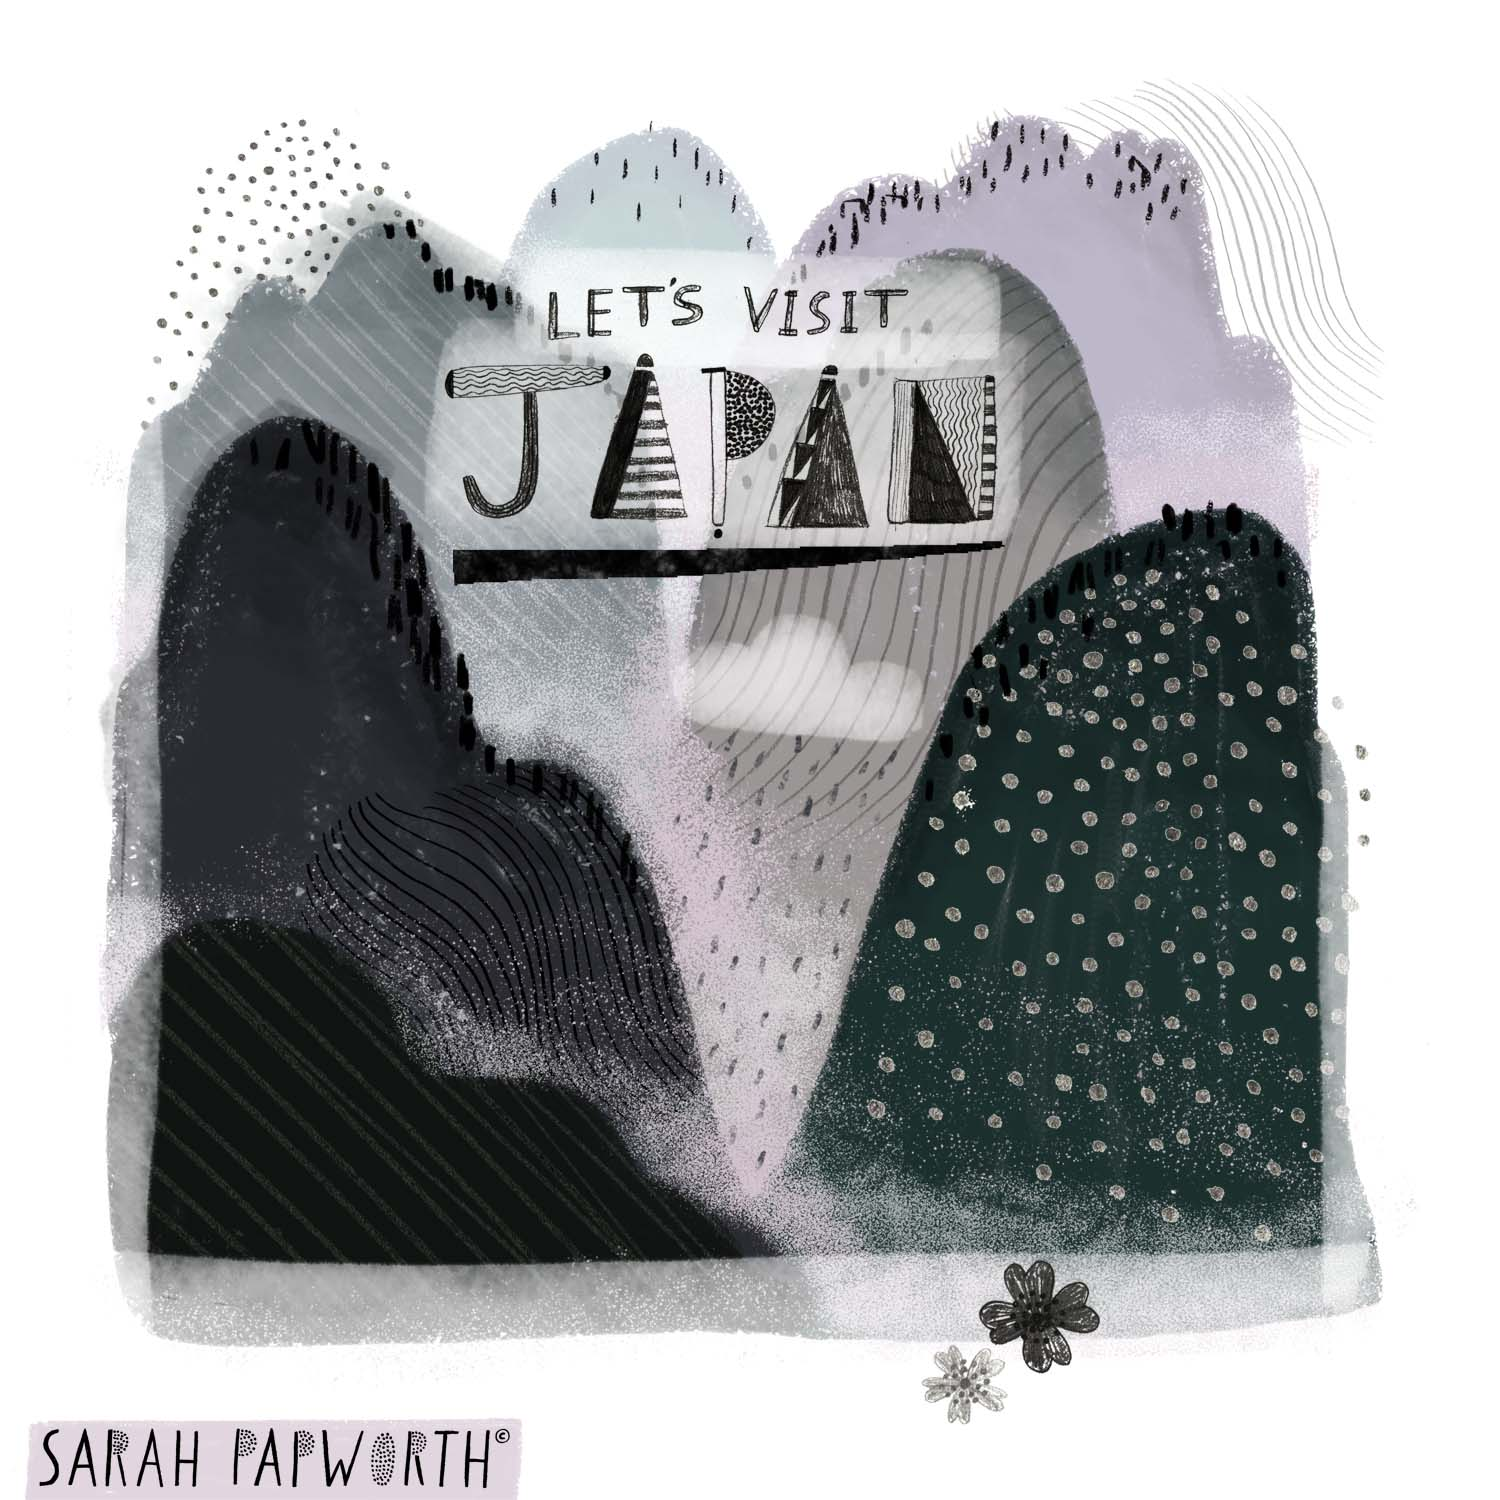 japan japanese mountains visit holiday editorial illustration sarah papworth.jpg